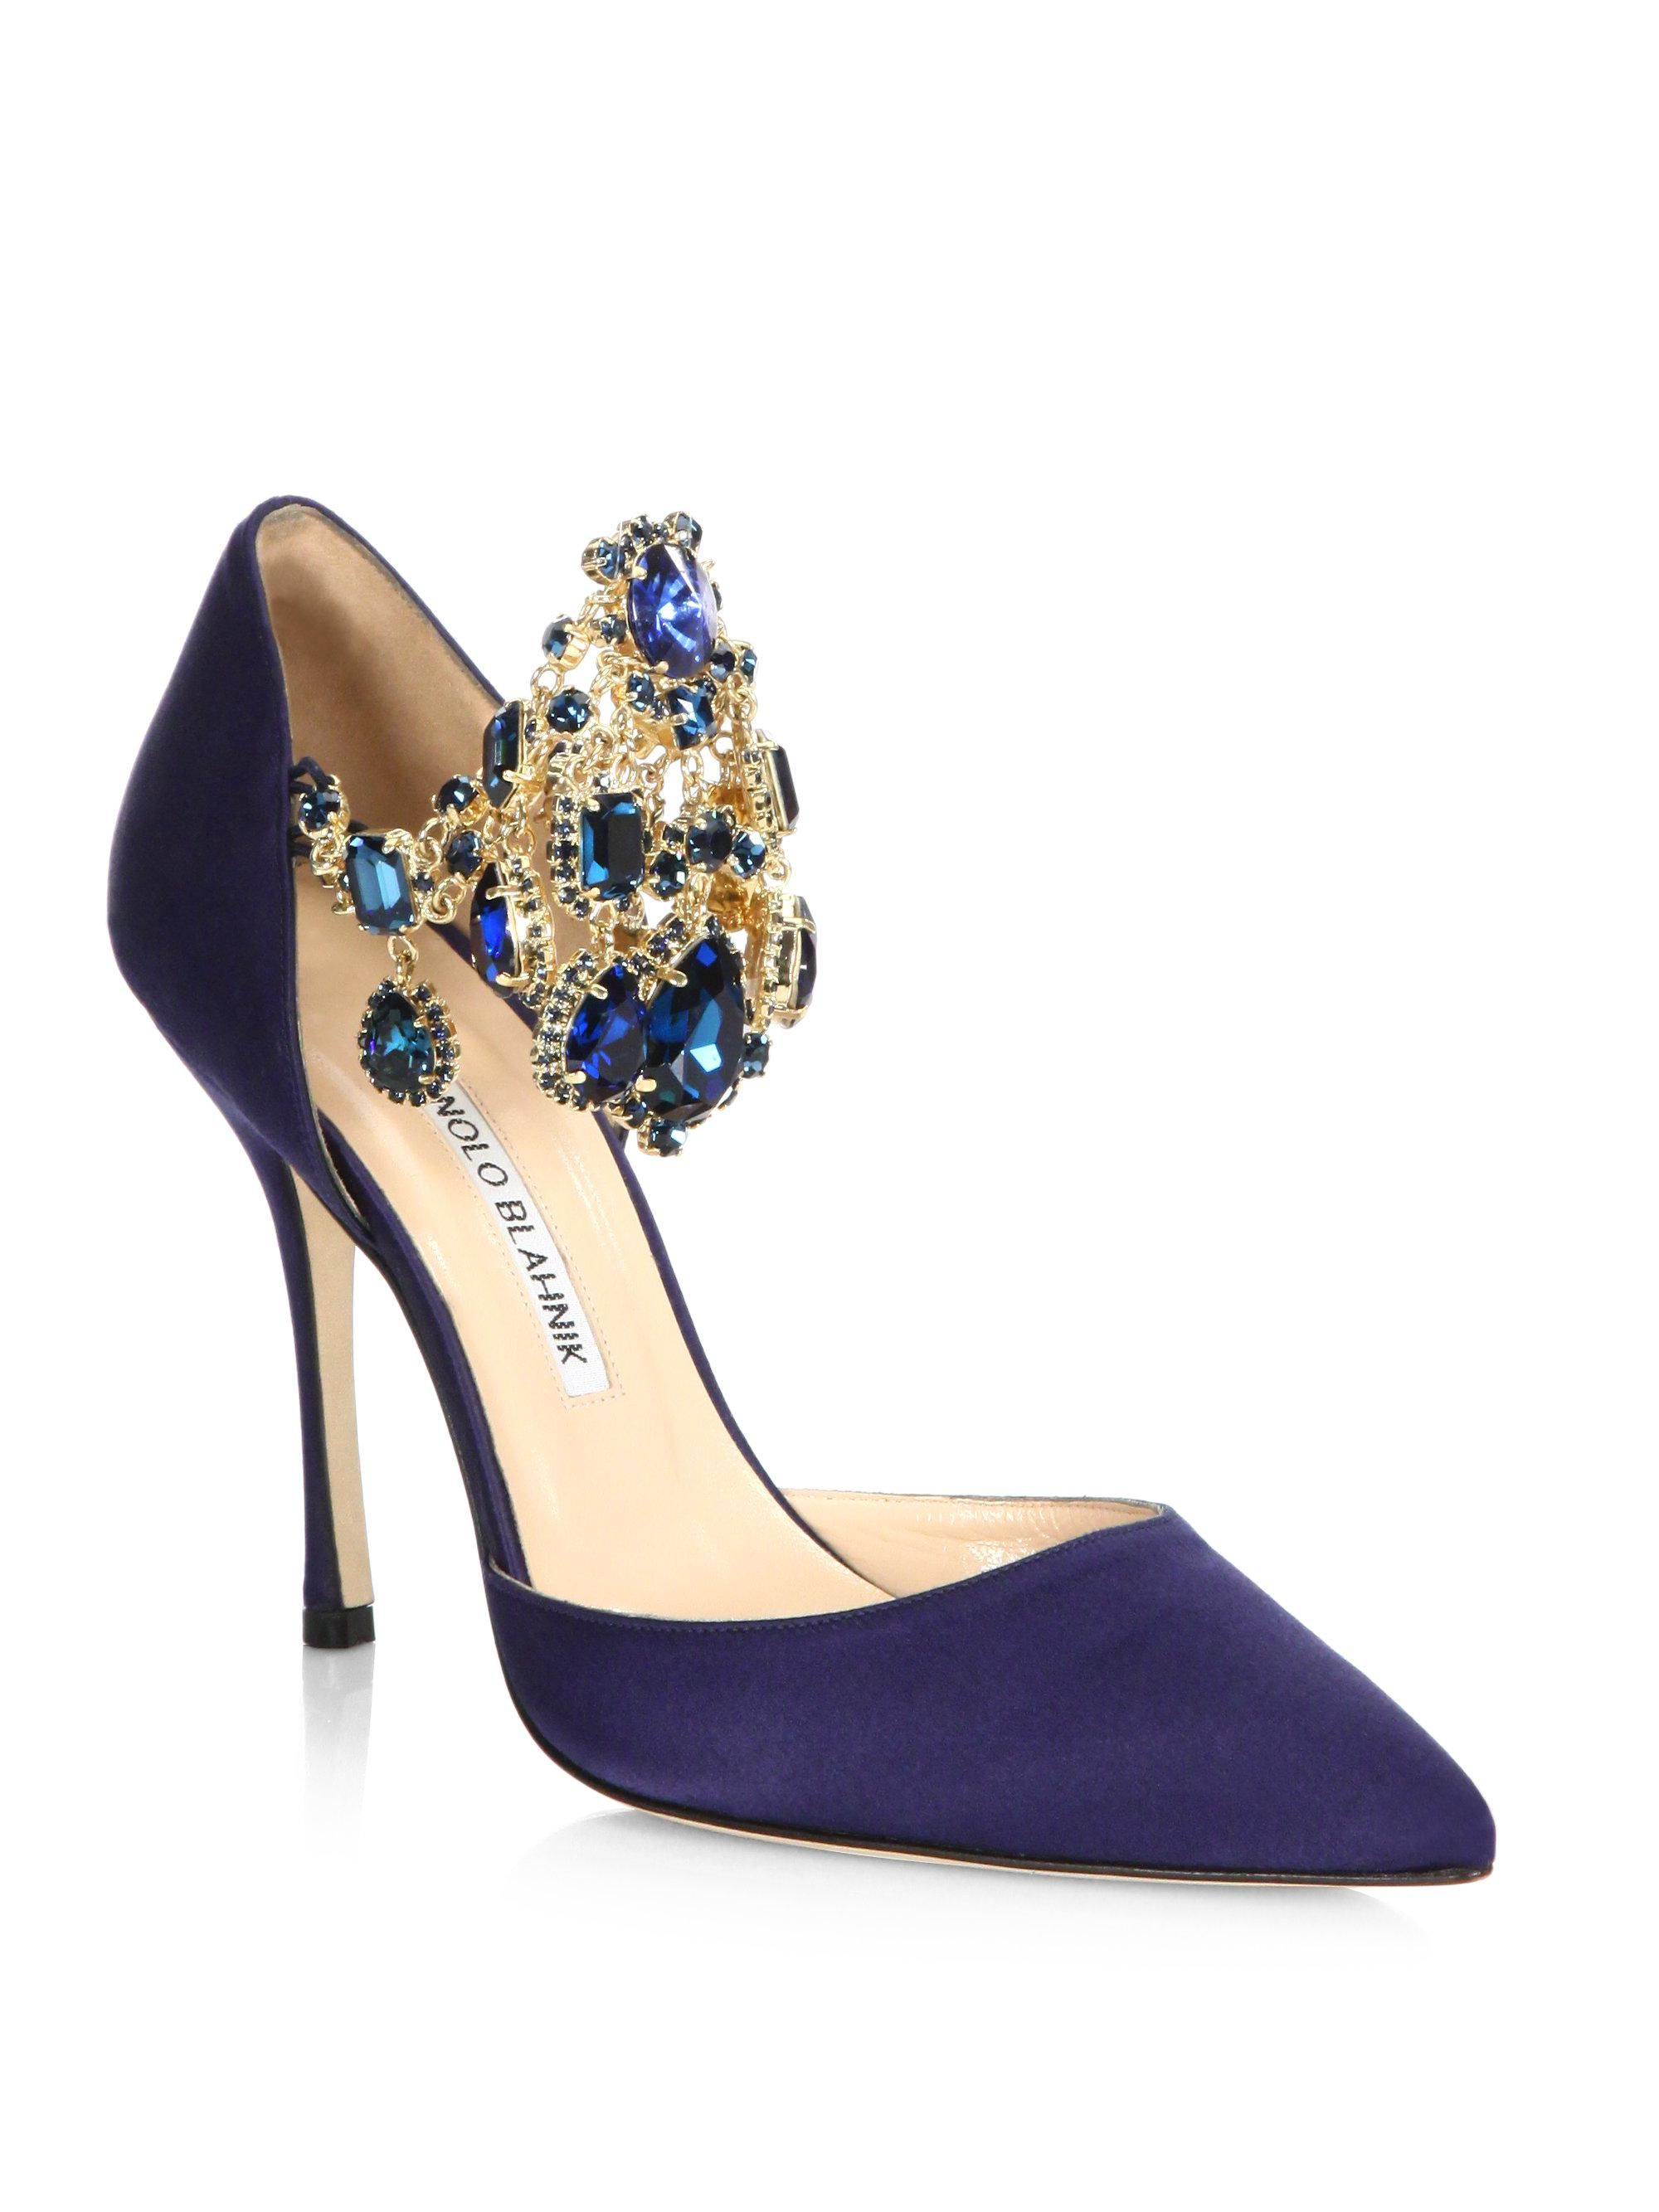 ... Shoes   Bags for Women. Manolo Blahnik Zullin Jewel-cuff Satin Pump 0a98eb67e8e6